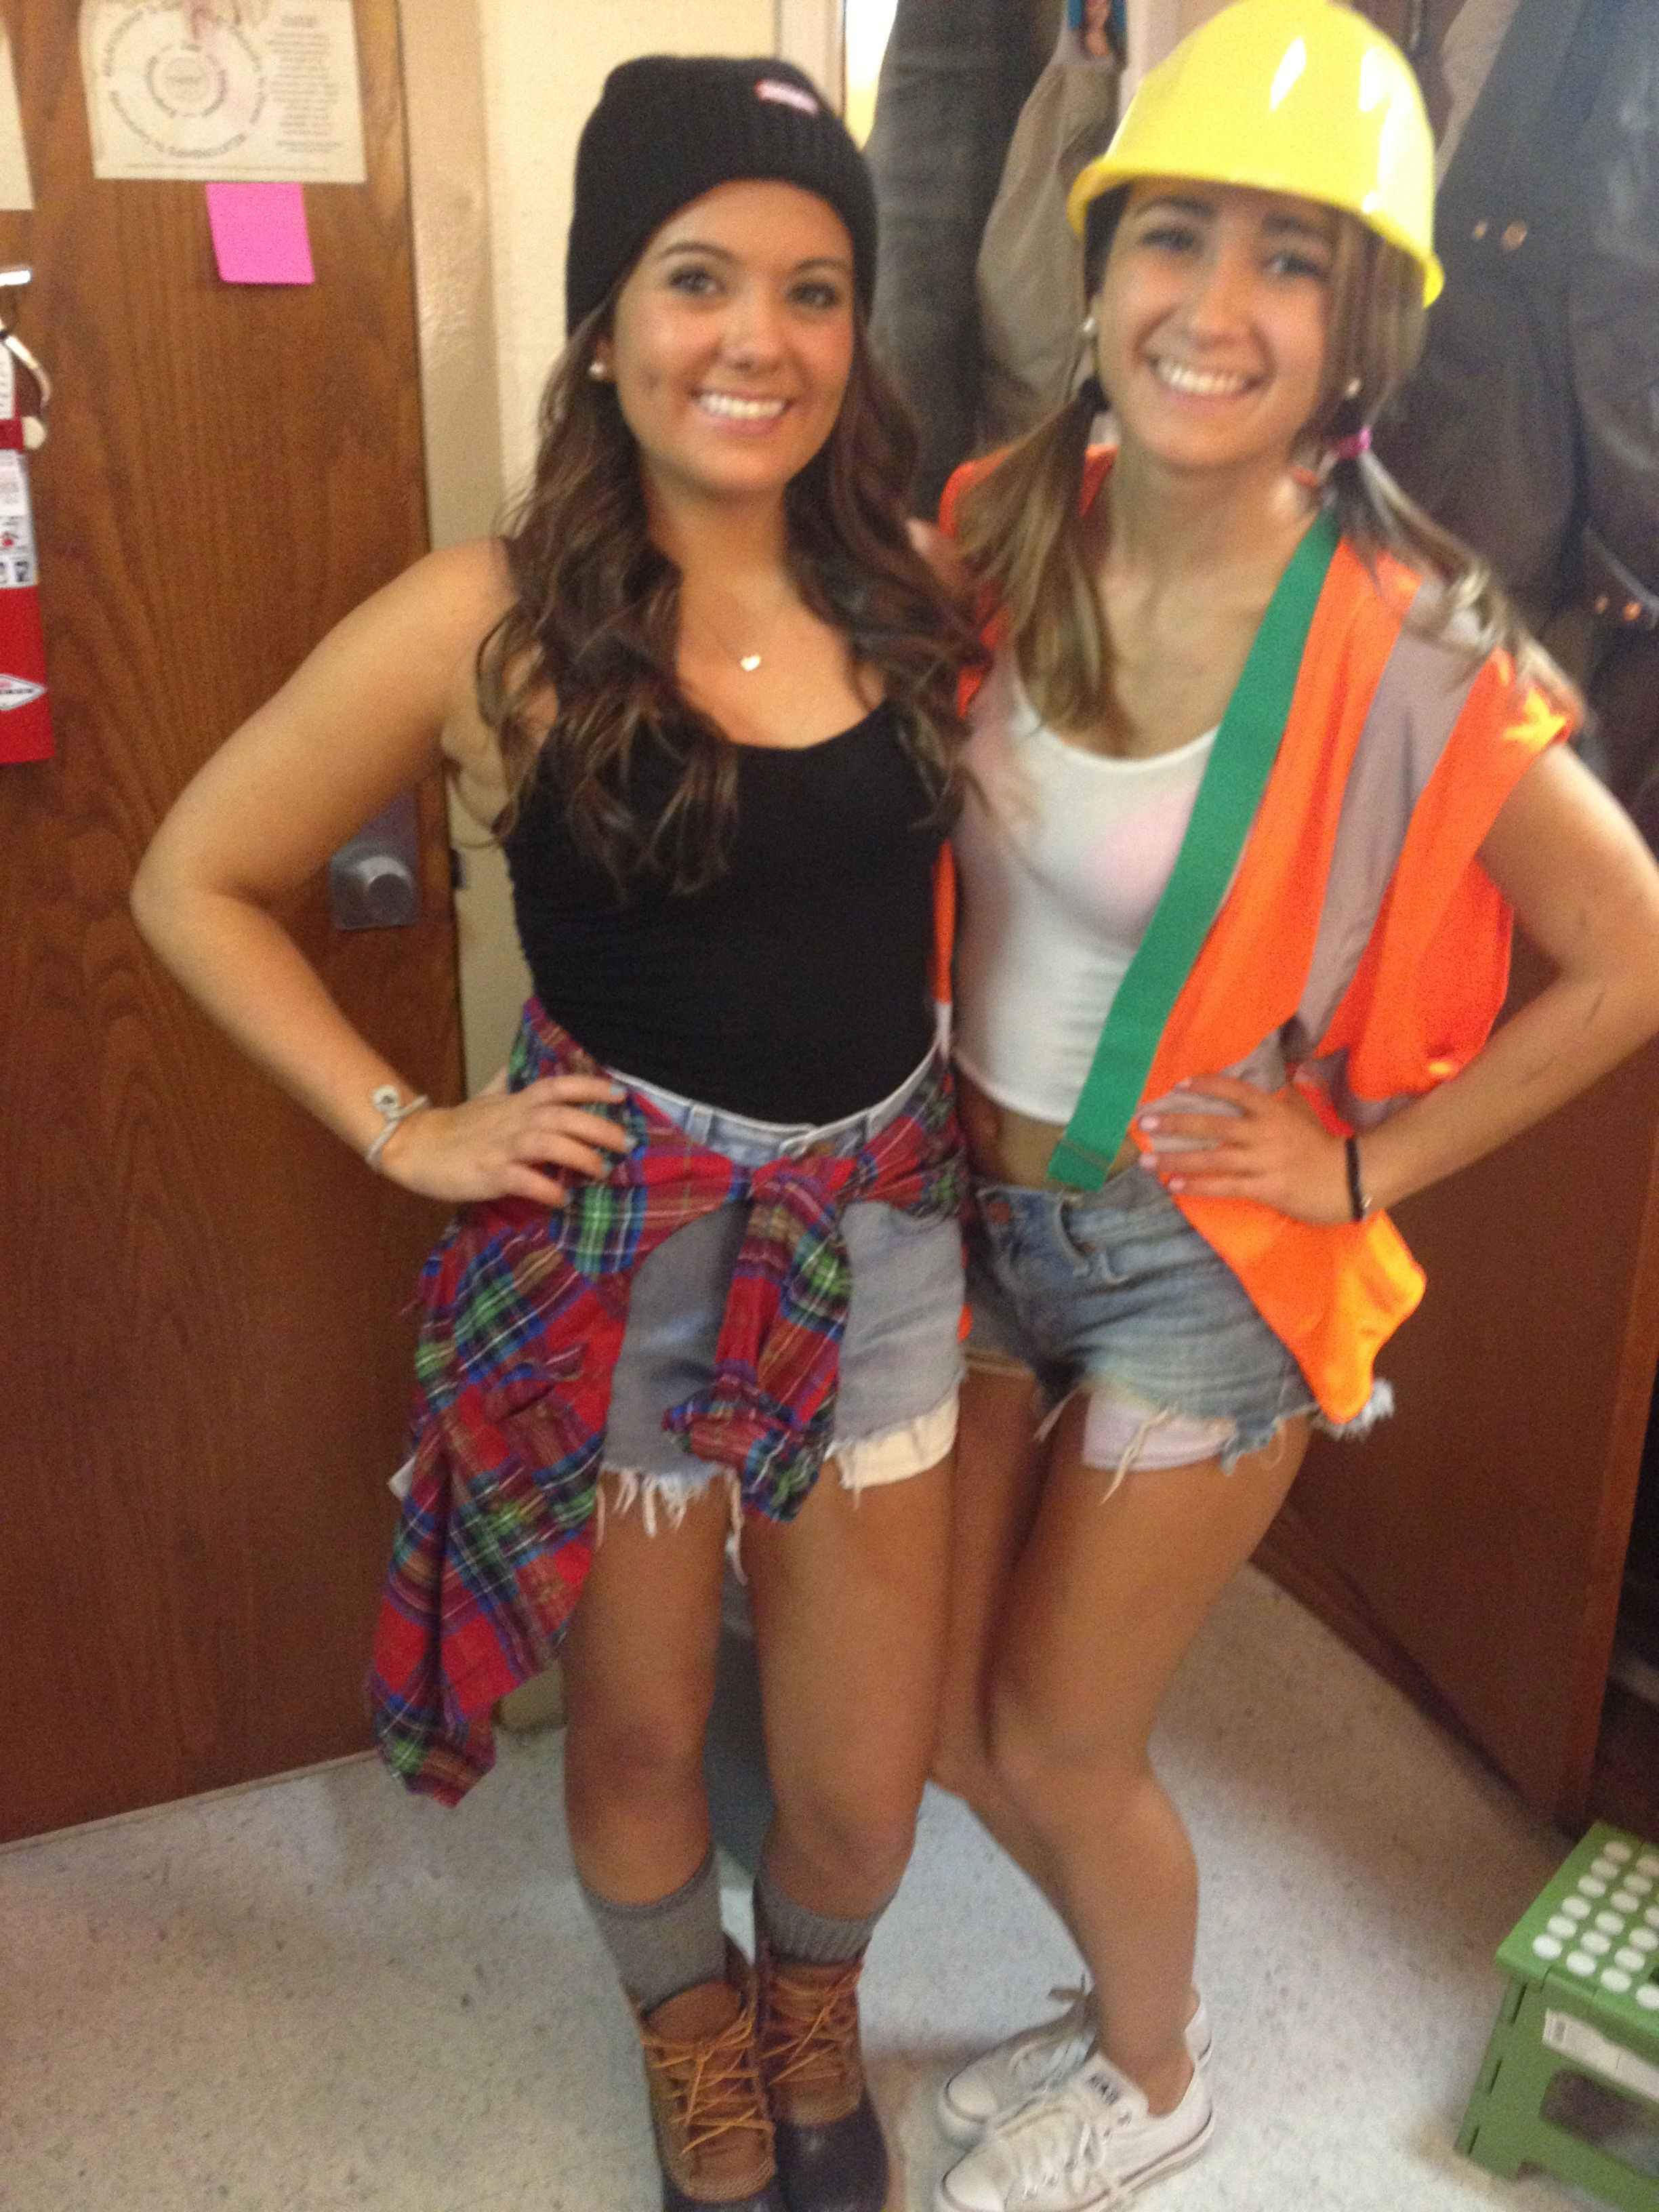 lumberjack and construction worker college halloween | let's get